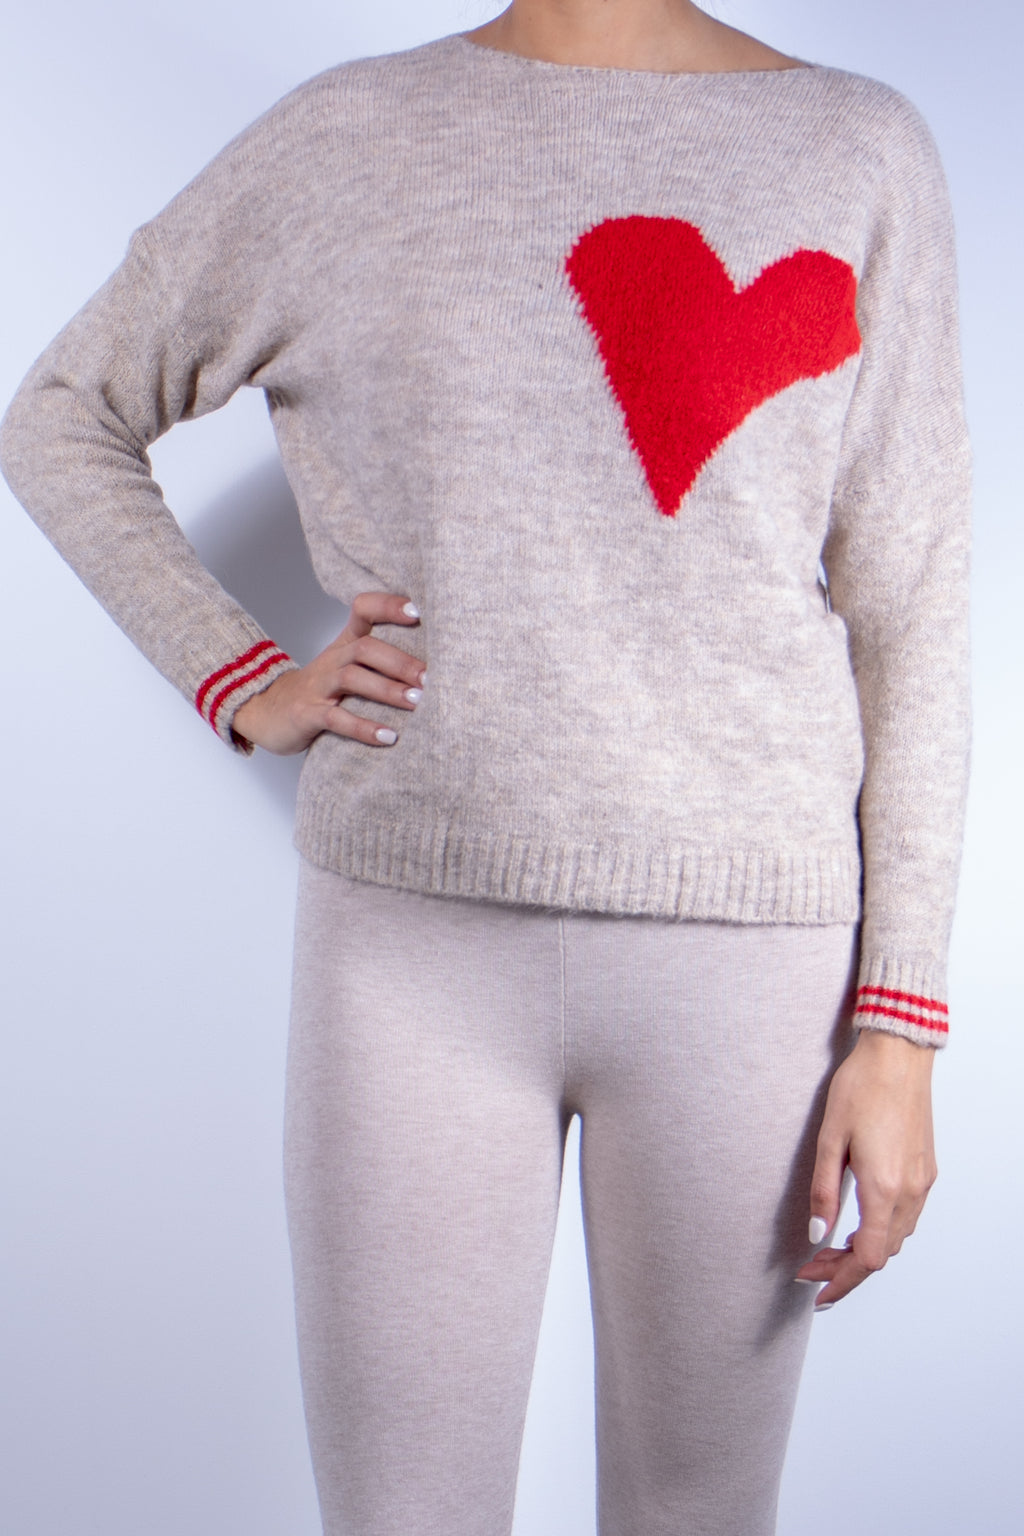 Crewneck sweater with one heart